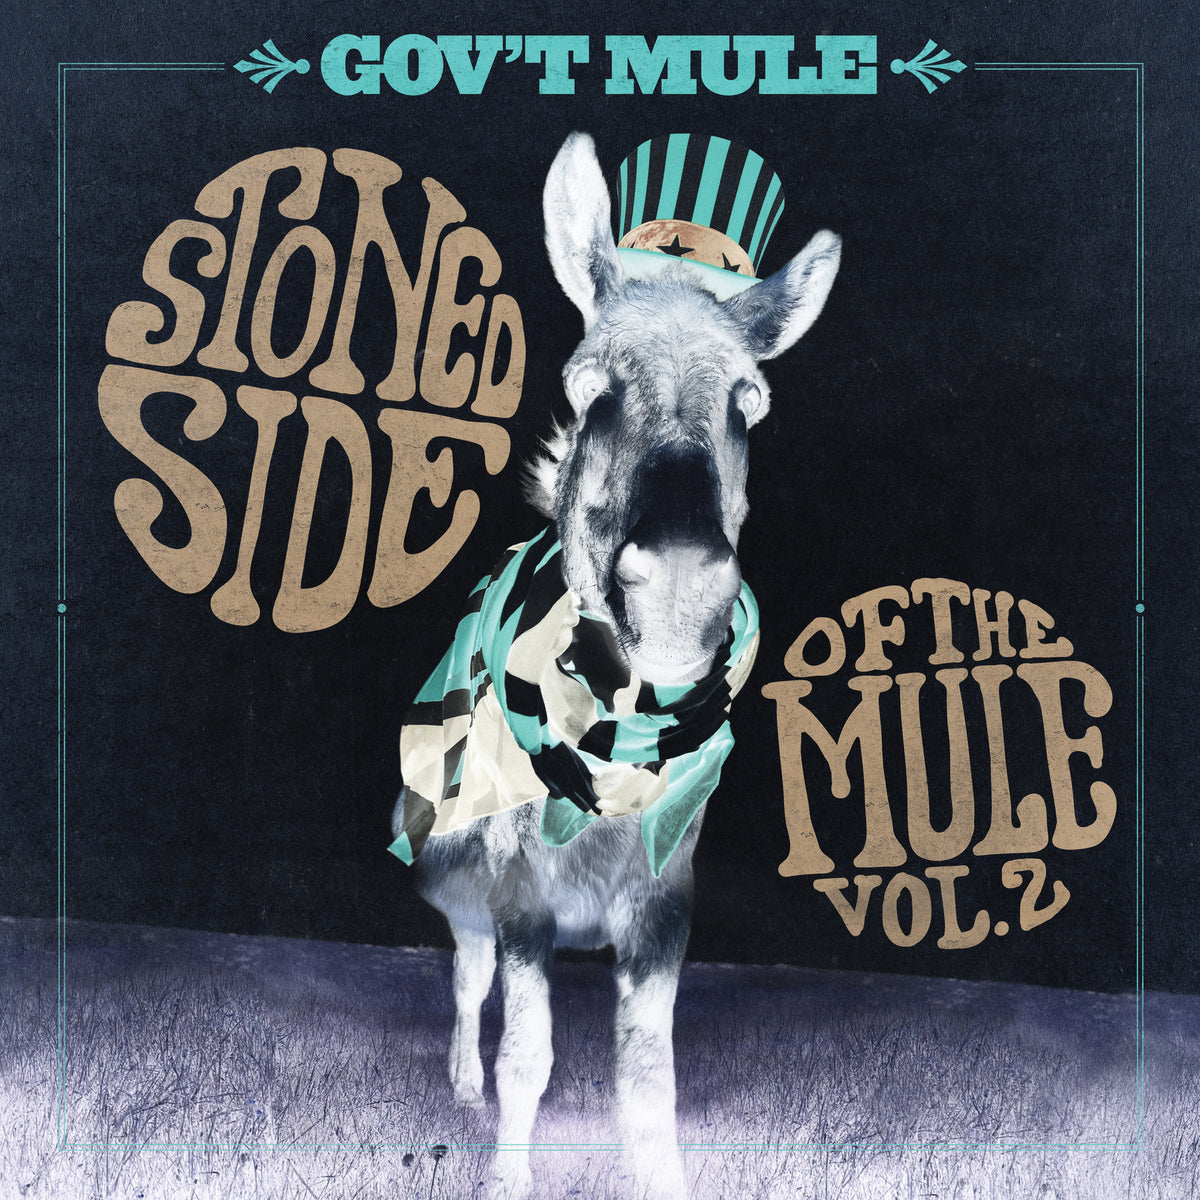 Gov't Mule: Stoned Side of the Mule Vol.2 (180g) Vinyl LP (Record Store Day)